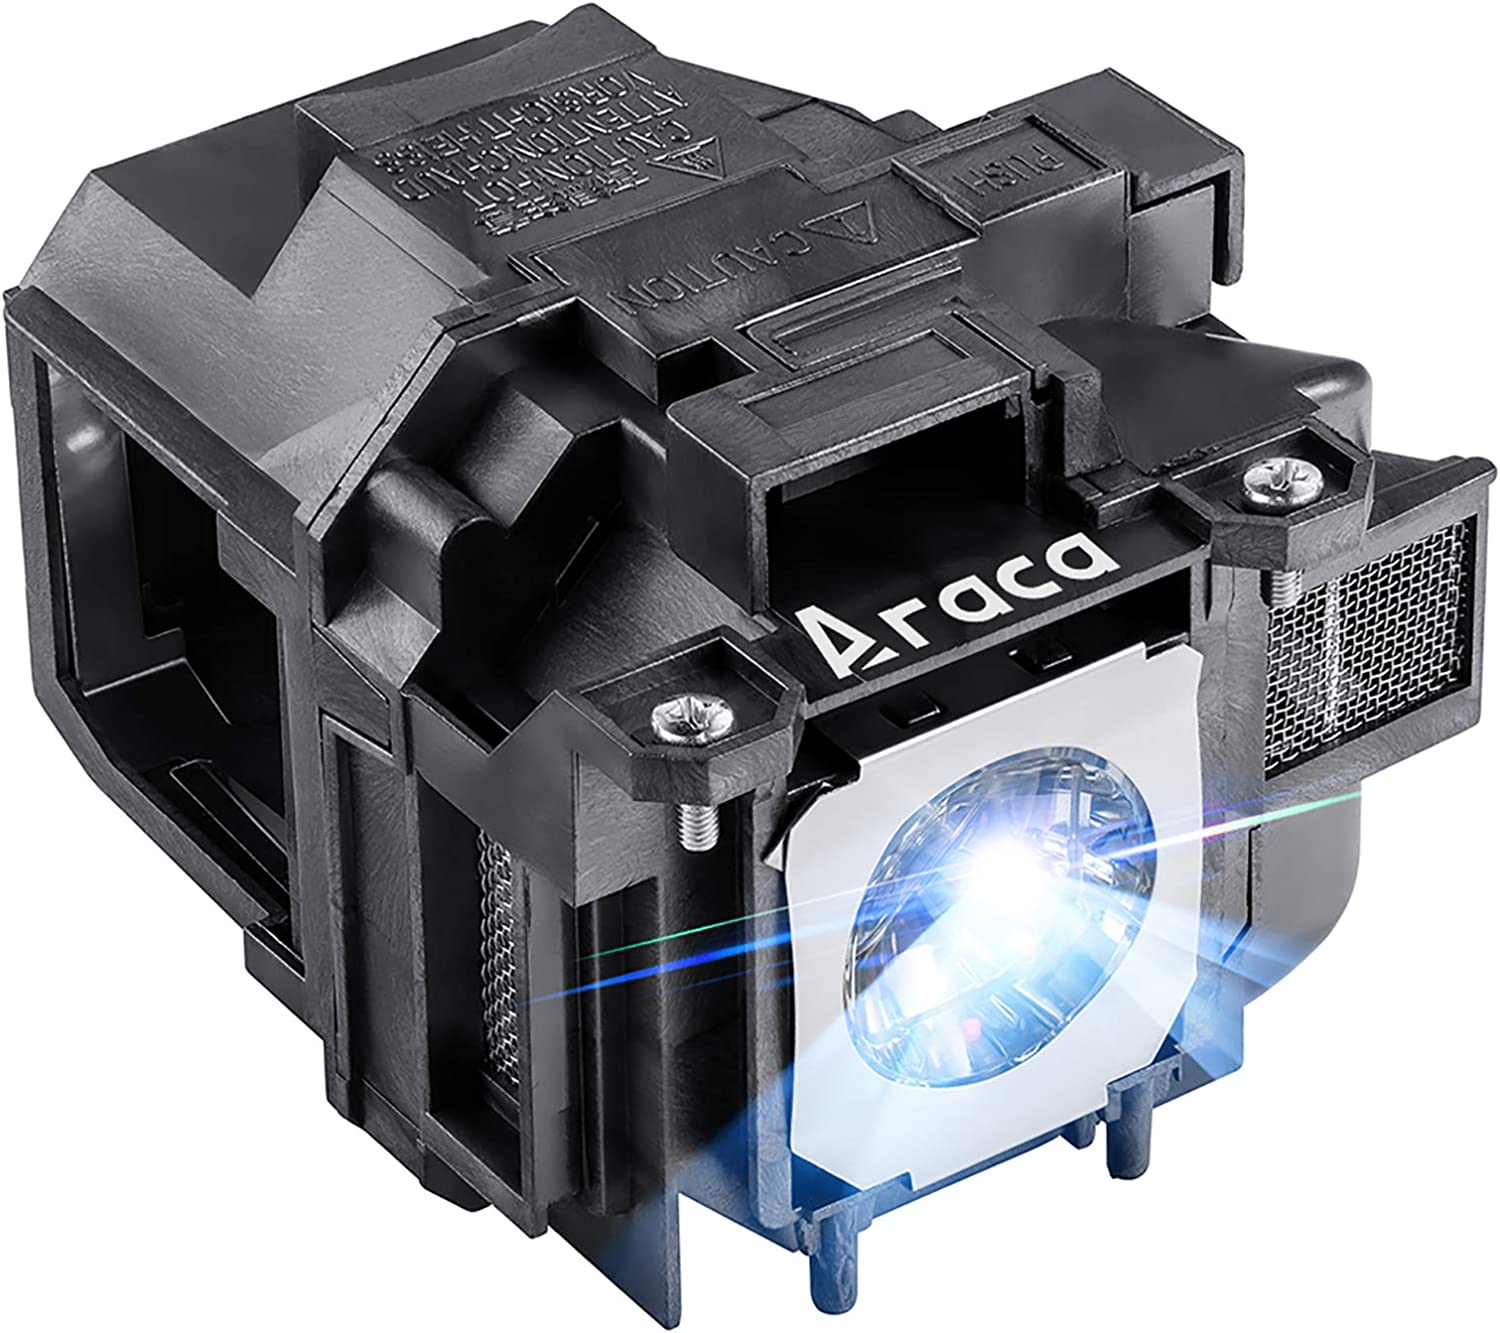 Araca ELPLP88 Replacement Projector Lamp with Housing for Epson EX7240 EX3240 EX9200 VS240 EB-X31 EX5240 TW5350 VS340 VS345 EB-U04 EX5250 H682 H683 /PowerLite 98H 2040 2045 740HD H719A Economical